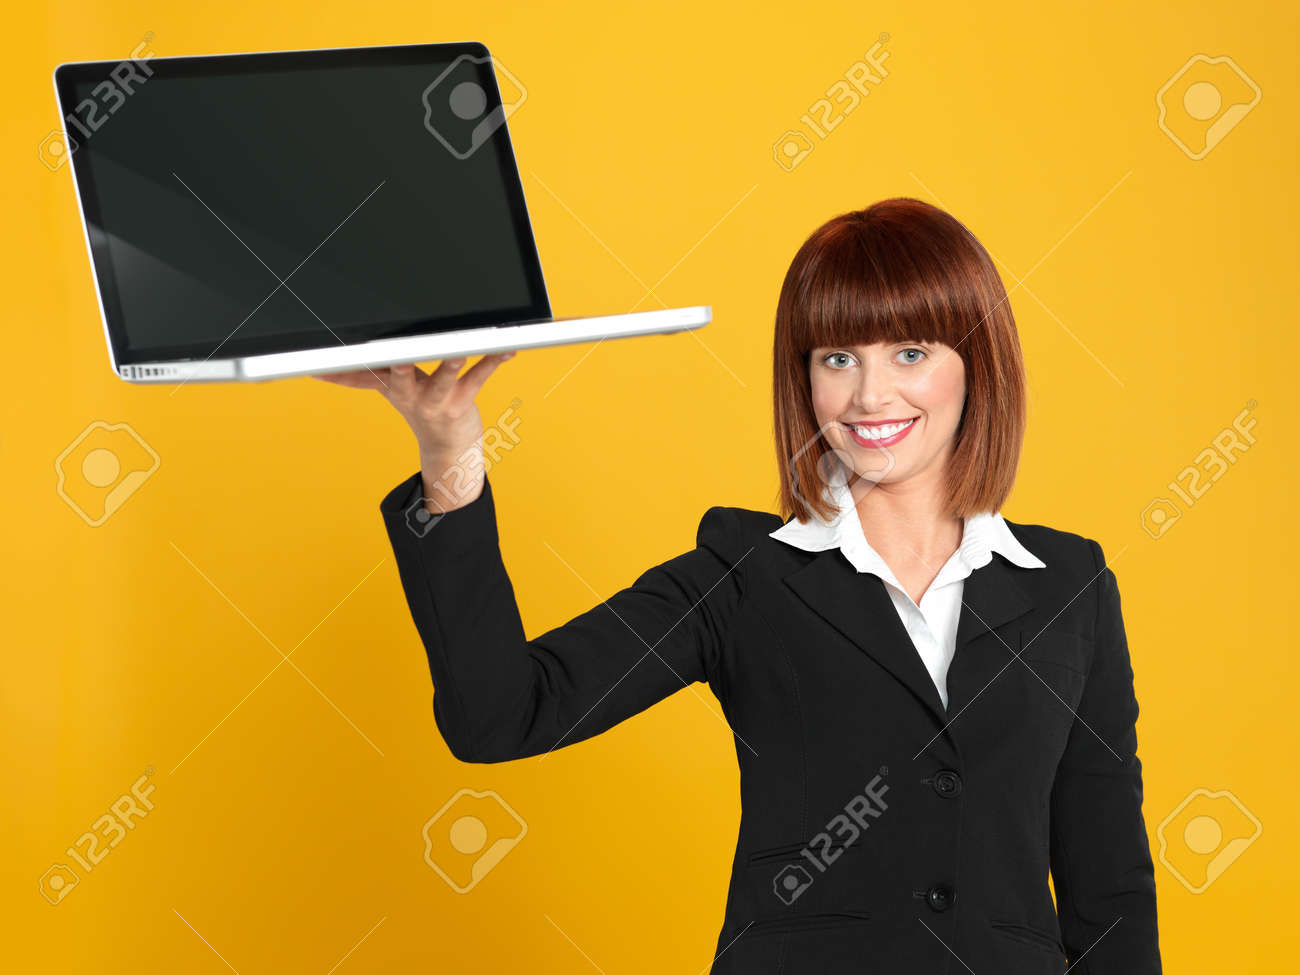 funny portrait of a beautiful, young businesswoman, holding a laptop as a tray, smiling, on yellow background Stock Photo - 13239381